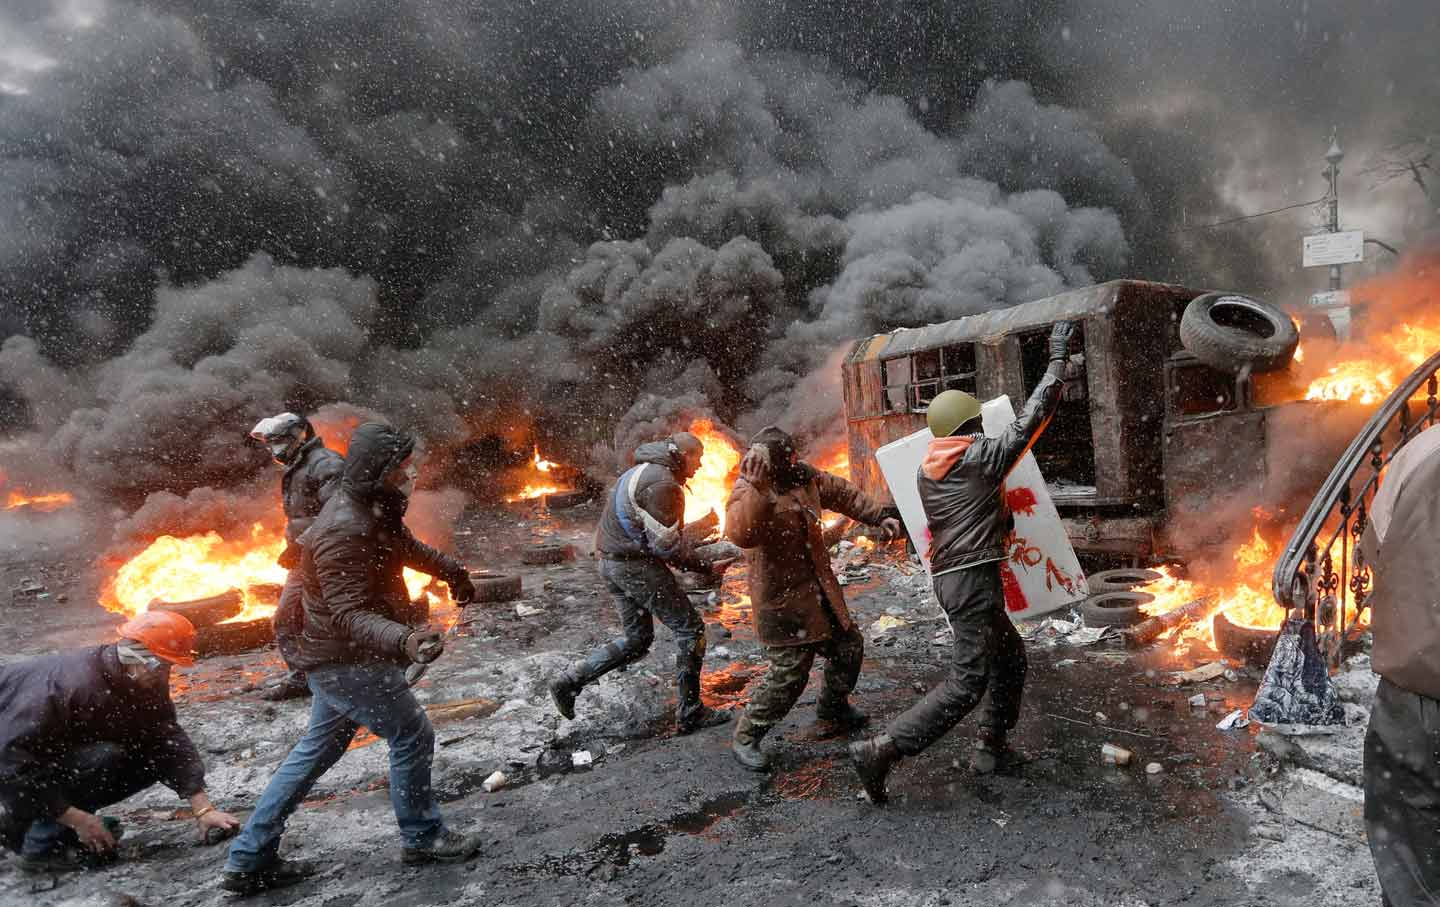 Protesters clash with police in central Kiev, Ukraine, Wednesday, January 22, 2014. (AP Photo / Efrem Lukatsky, file)